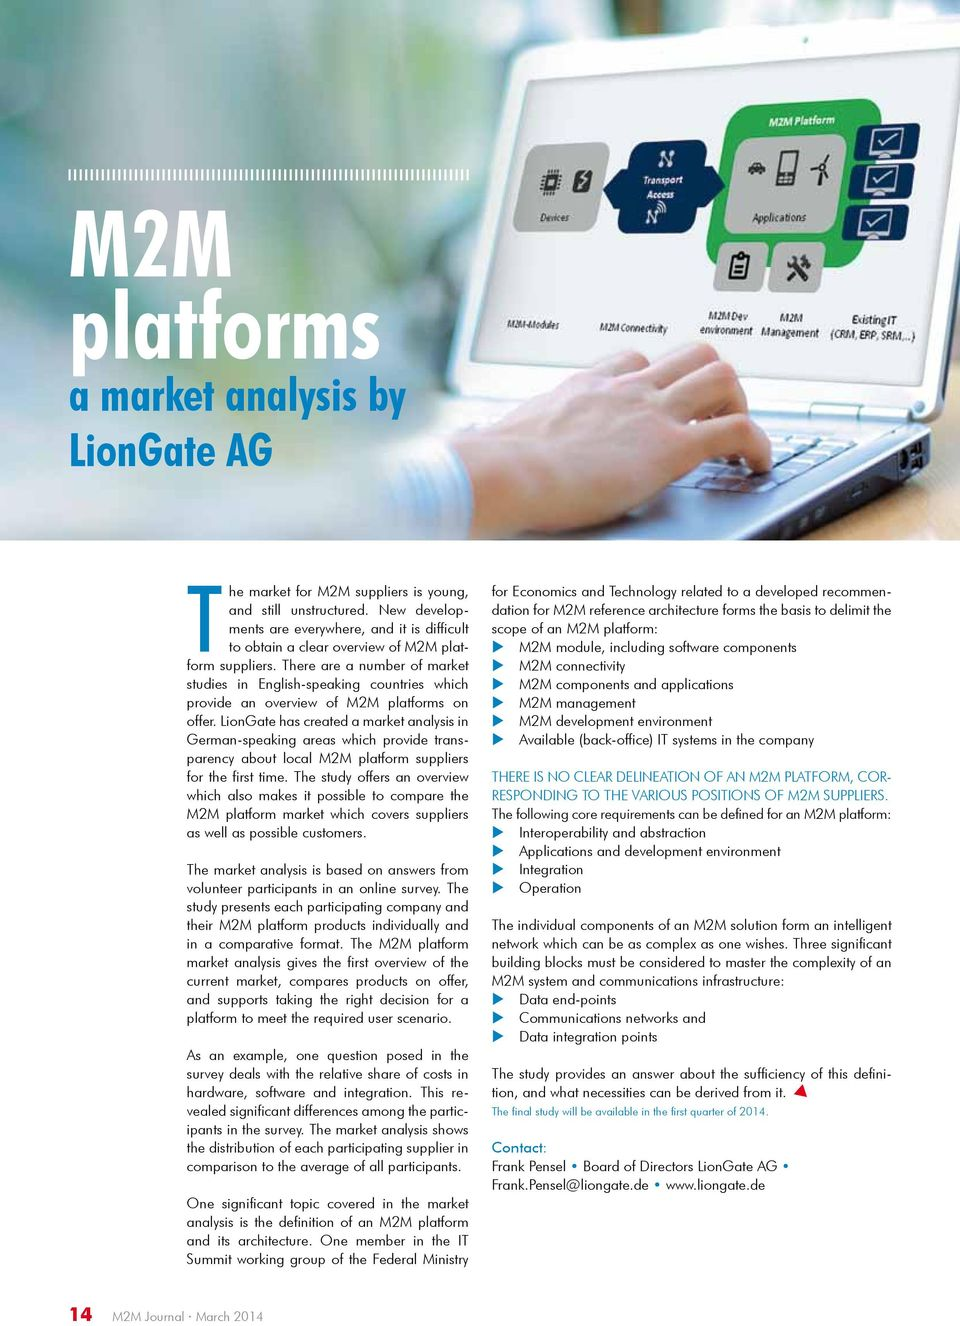 There are a number of market studies in English-speaking countries which provide an overview of M2M platforms on offer.